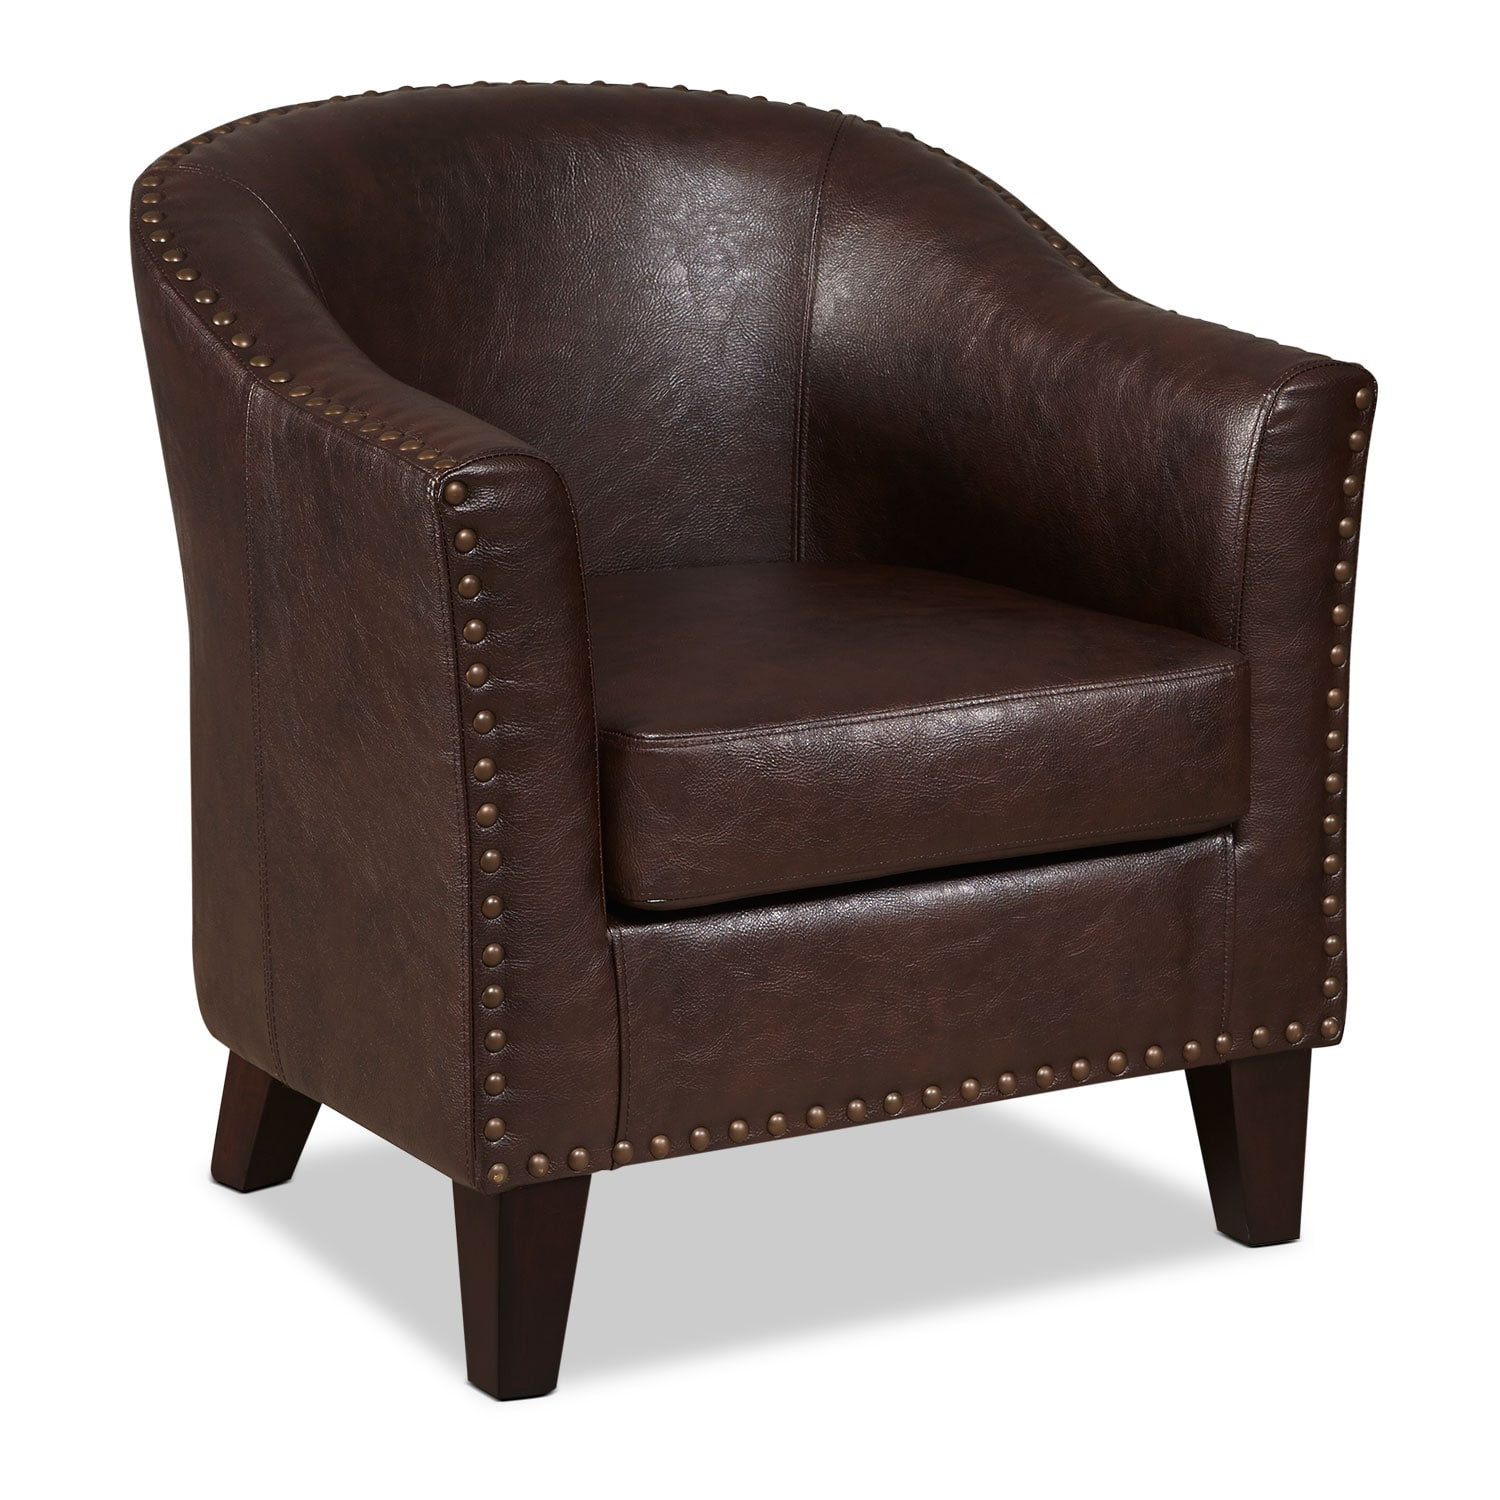 Brogan accent chair brown american signature furniture for Signature furniture